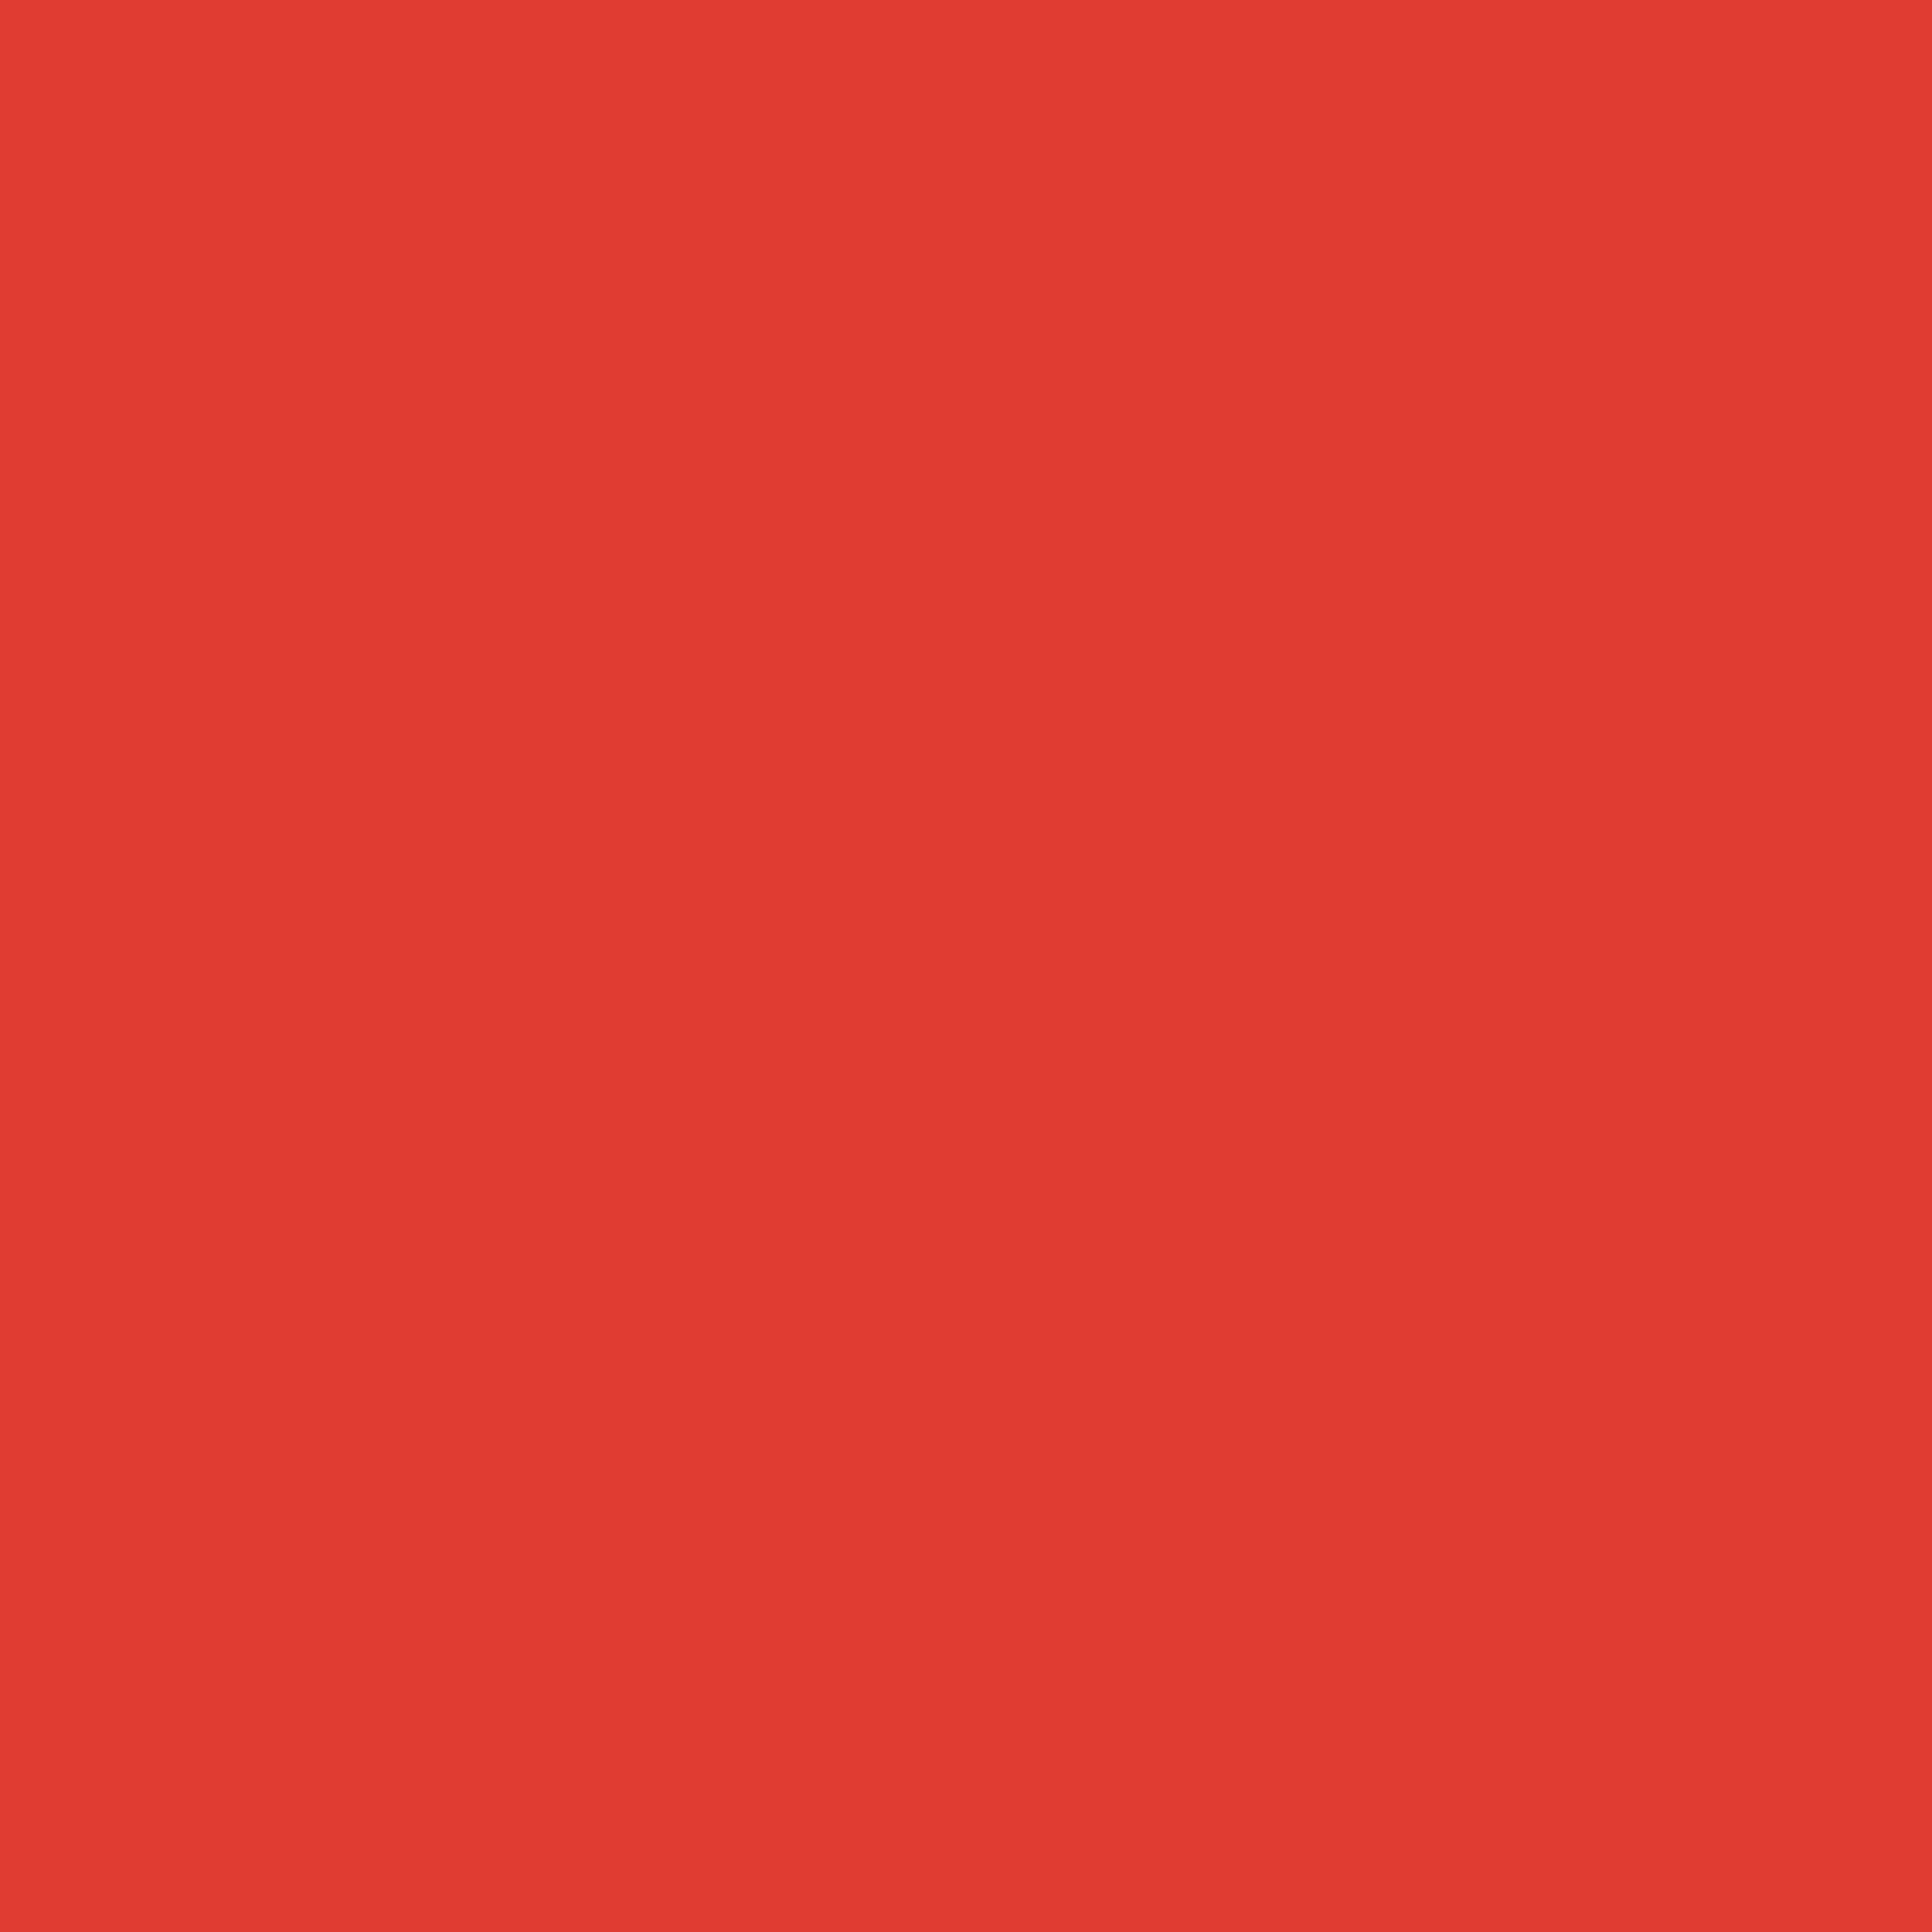 2732x2732 CG Red Solid Color Background